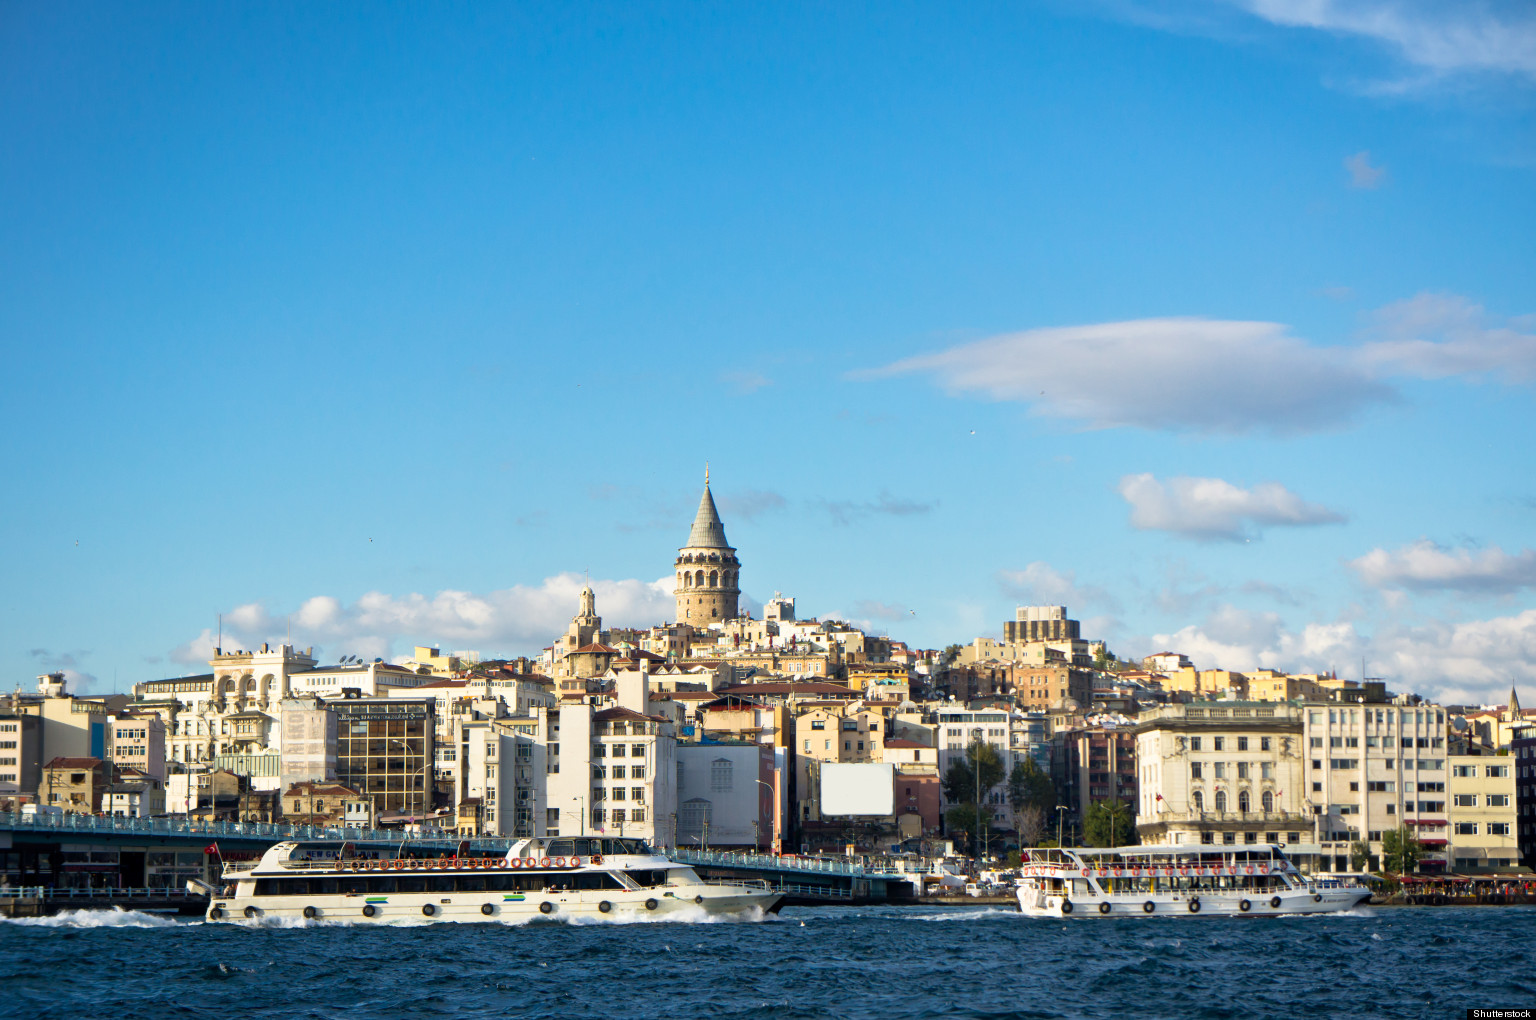 Turkey branches out into medical tourism - Turkish culture and tourism office ...